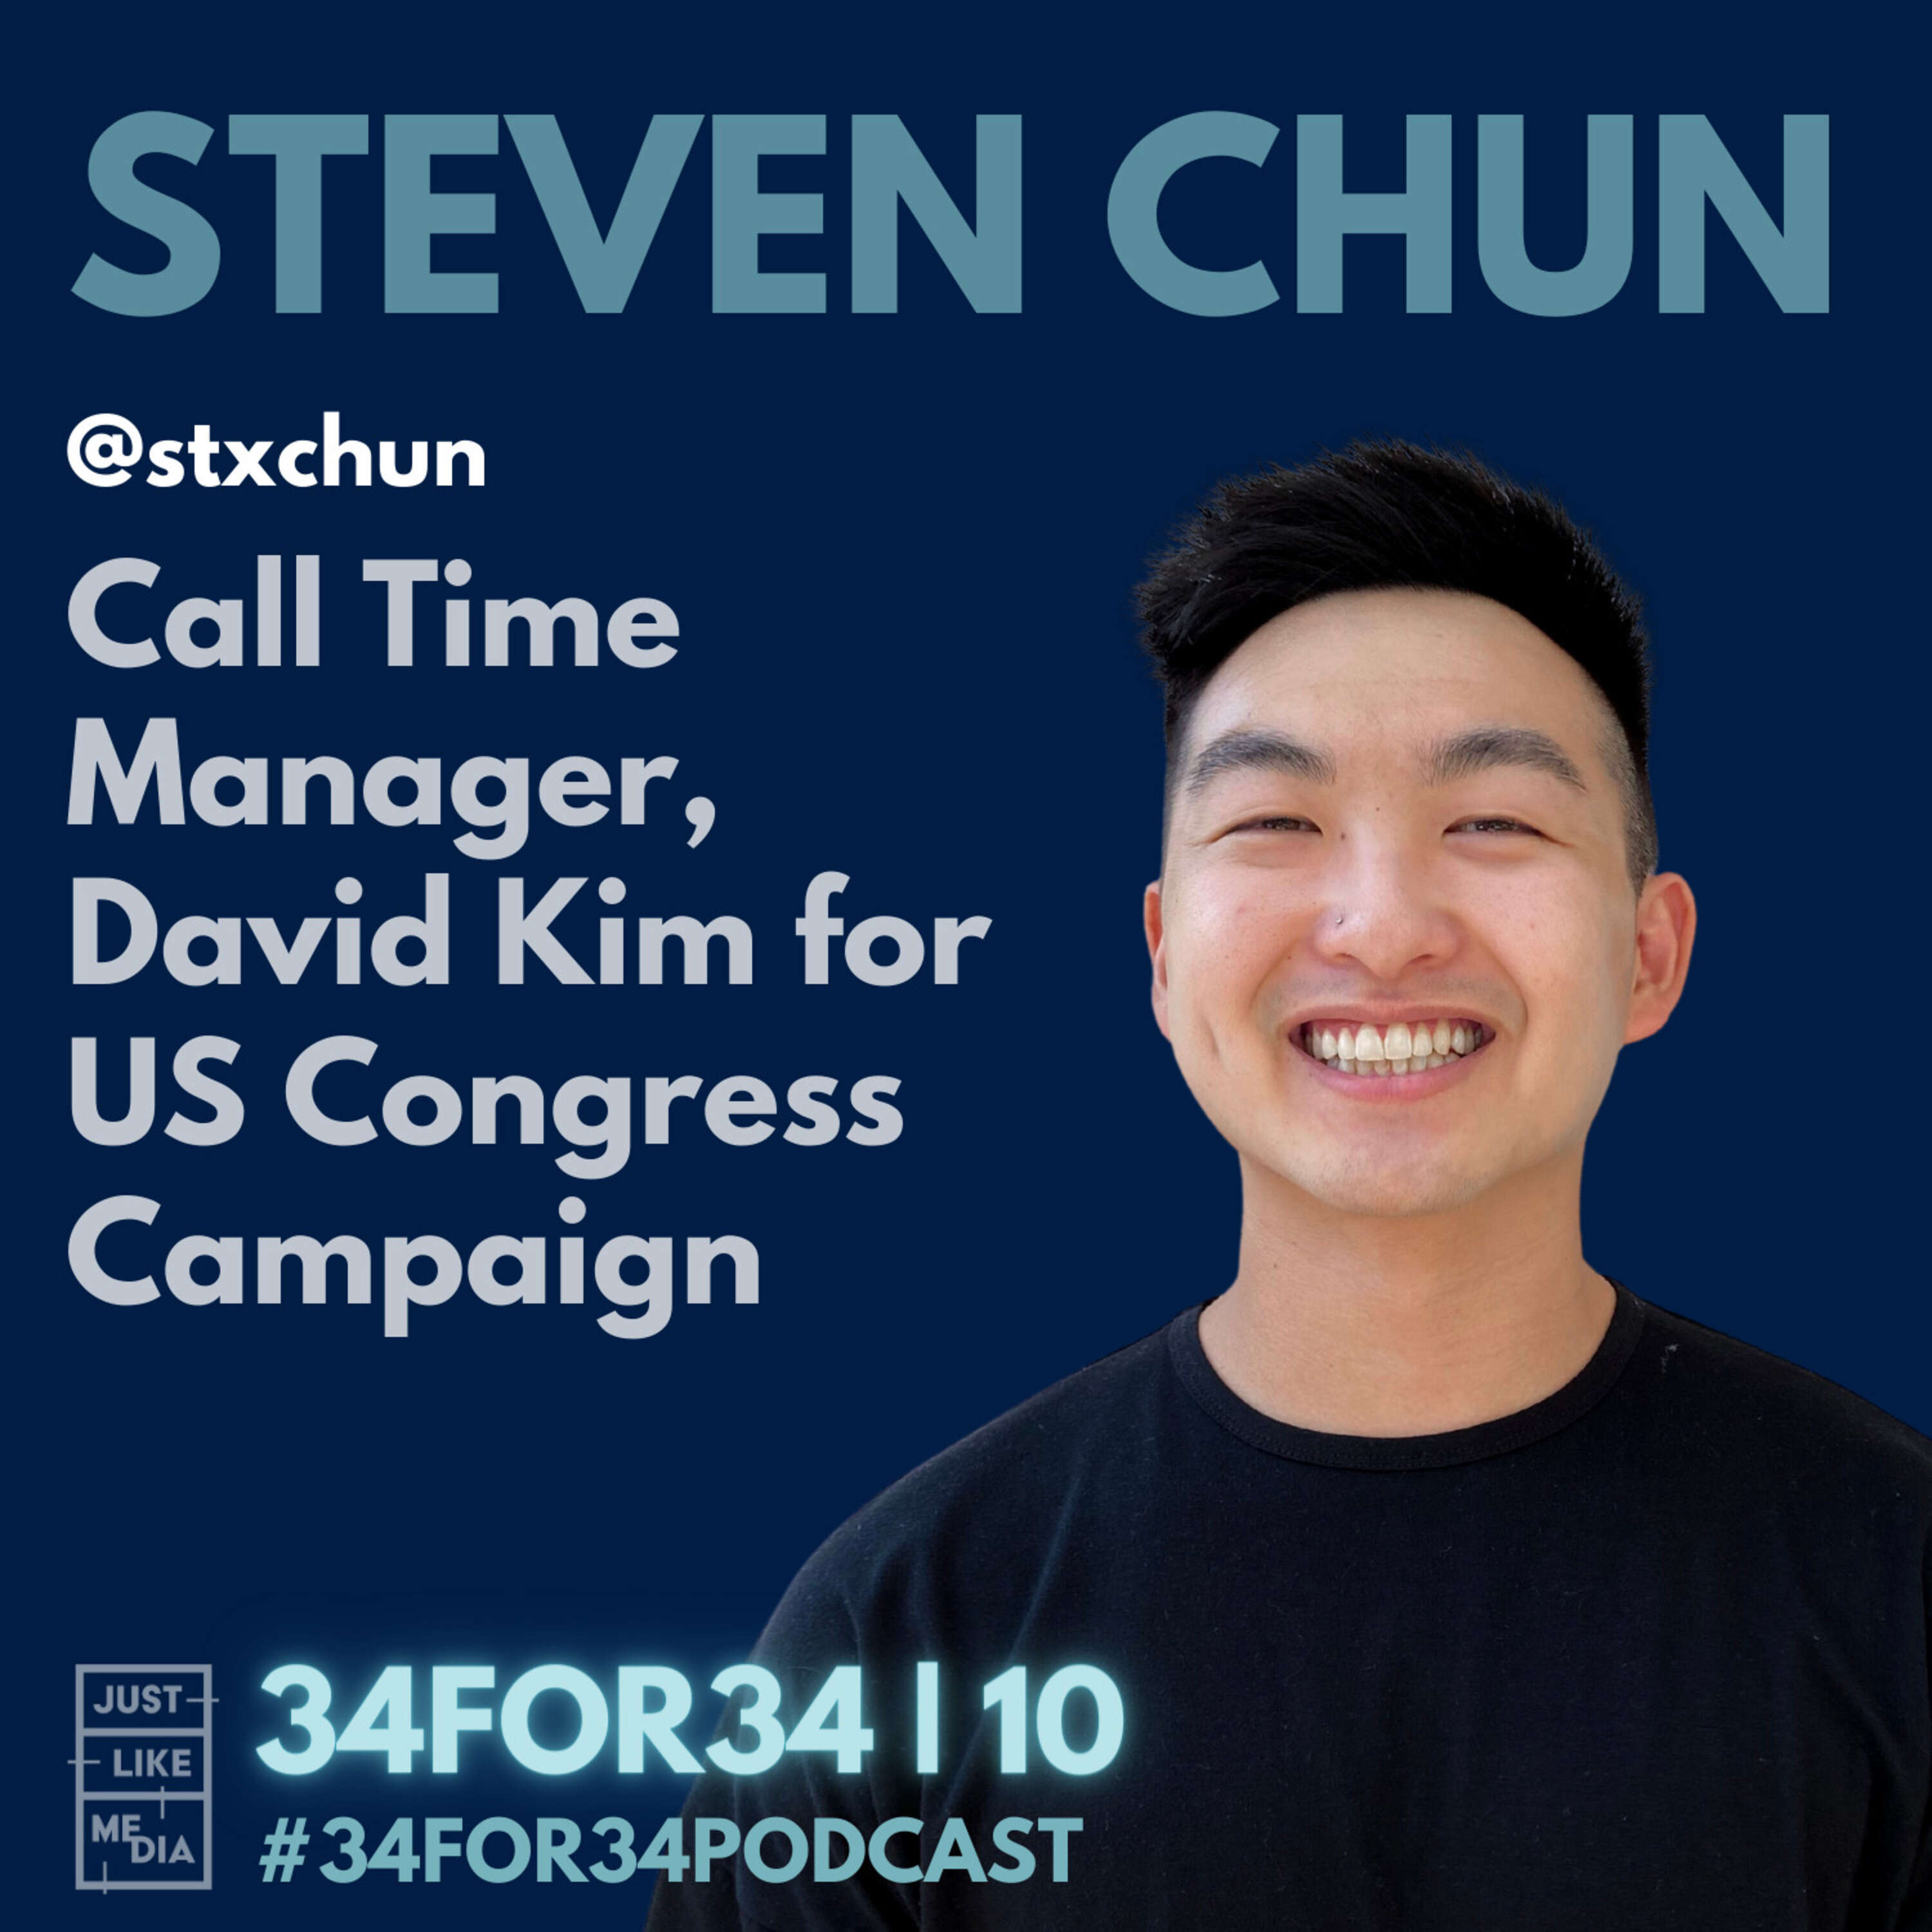 10 // Steven Chun // Call Time Manager, David Kim for US Congress Campaign